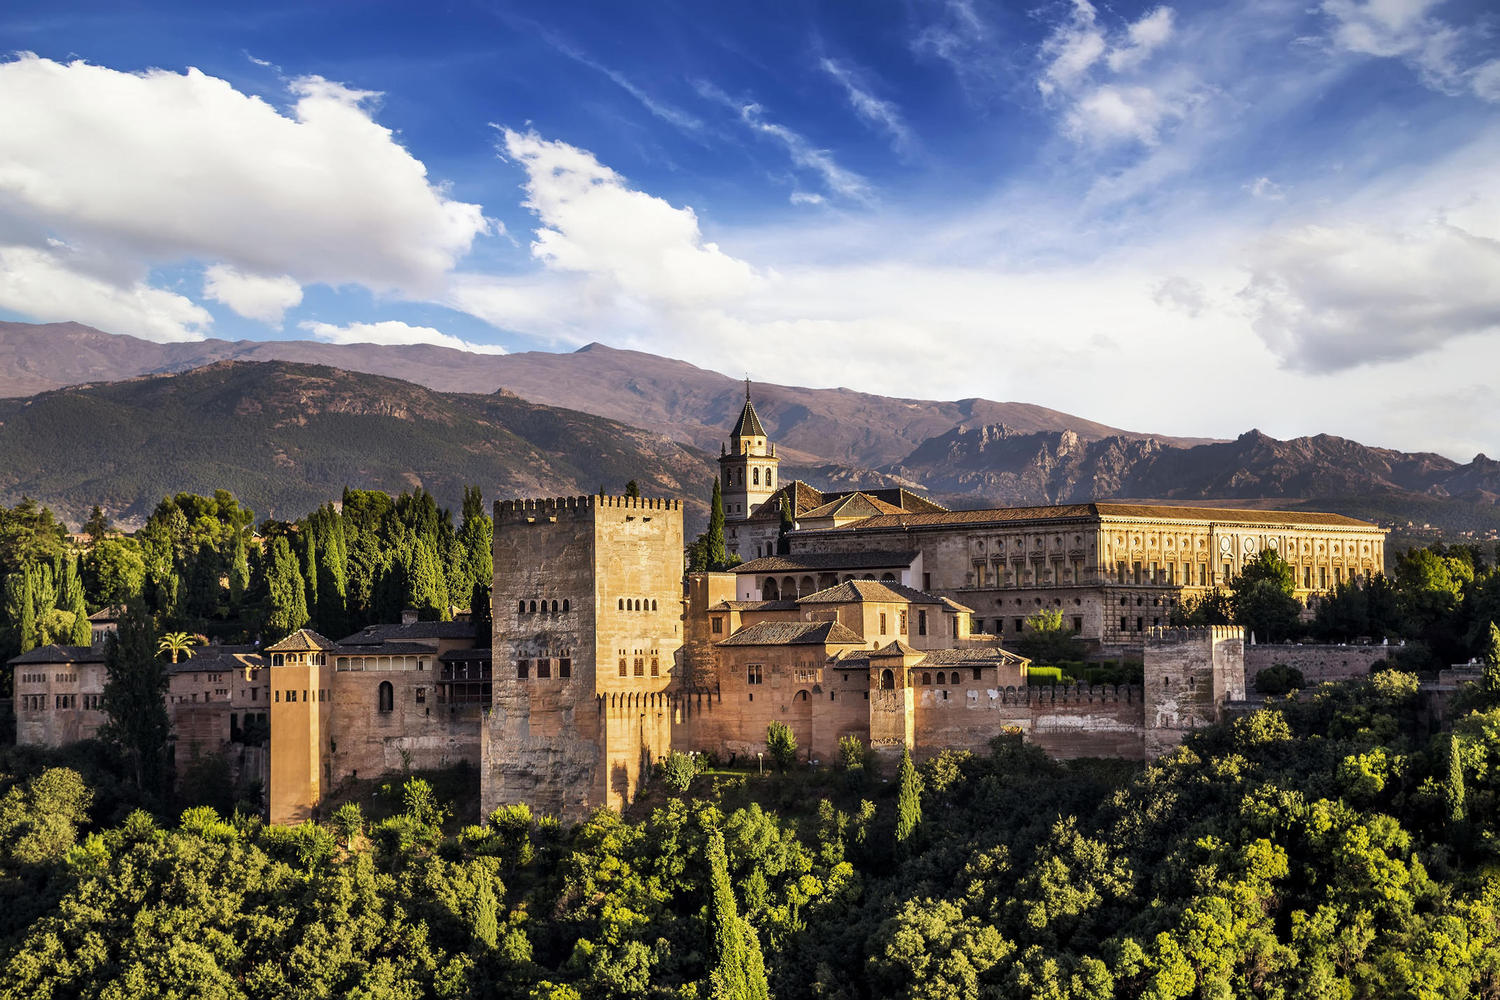 Panoramic view of the Alhambra